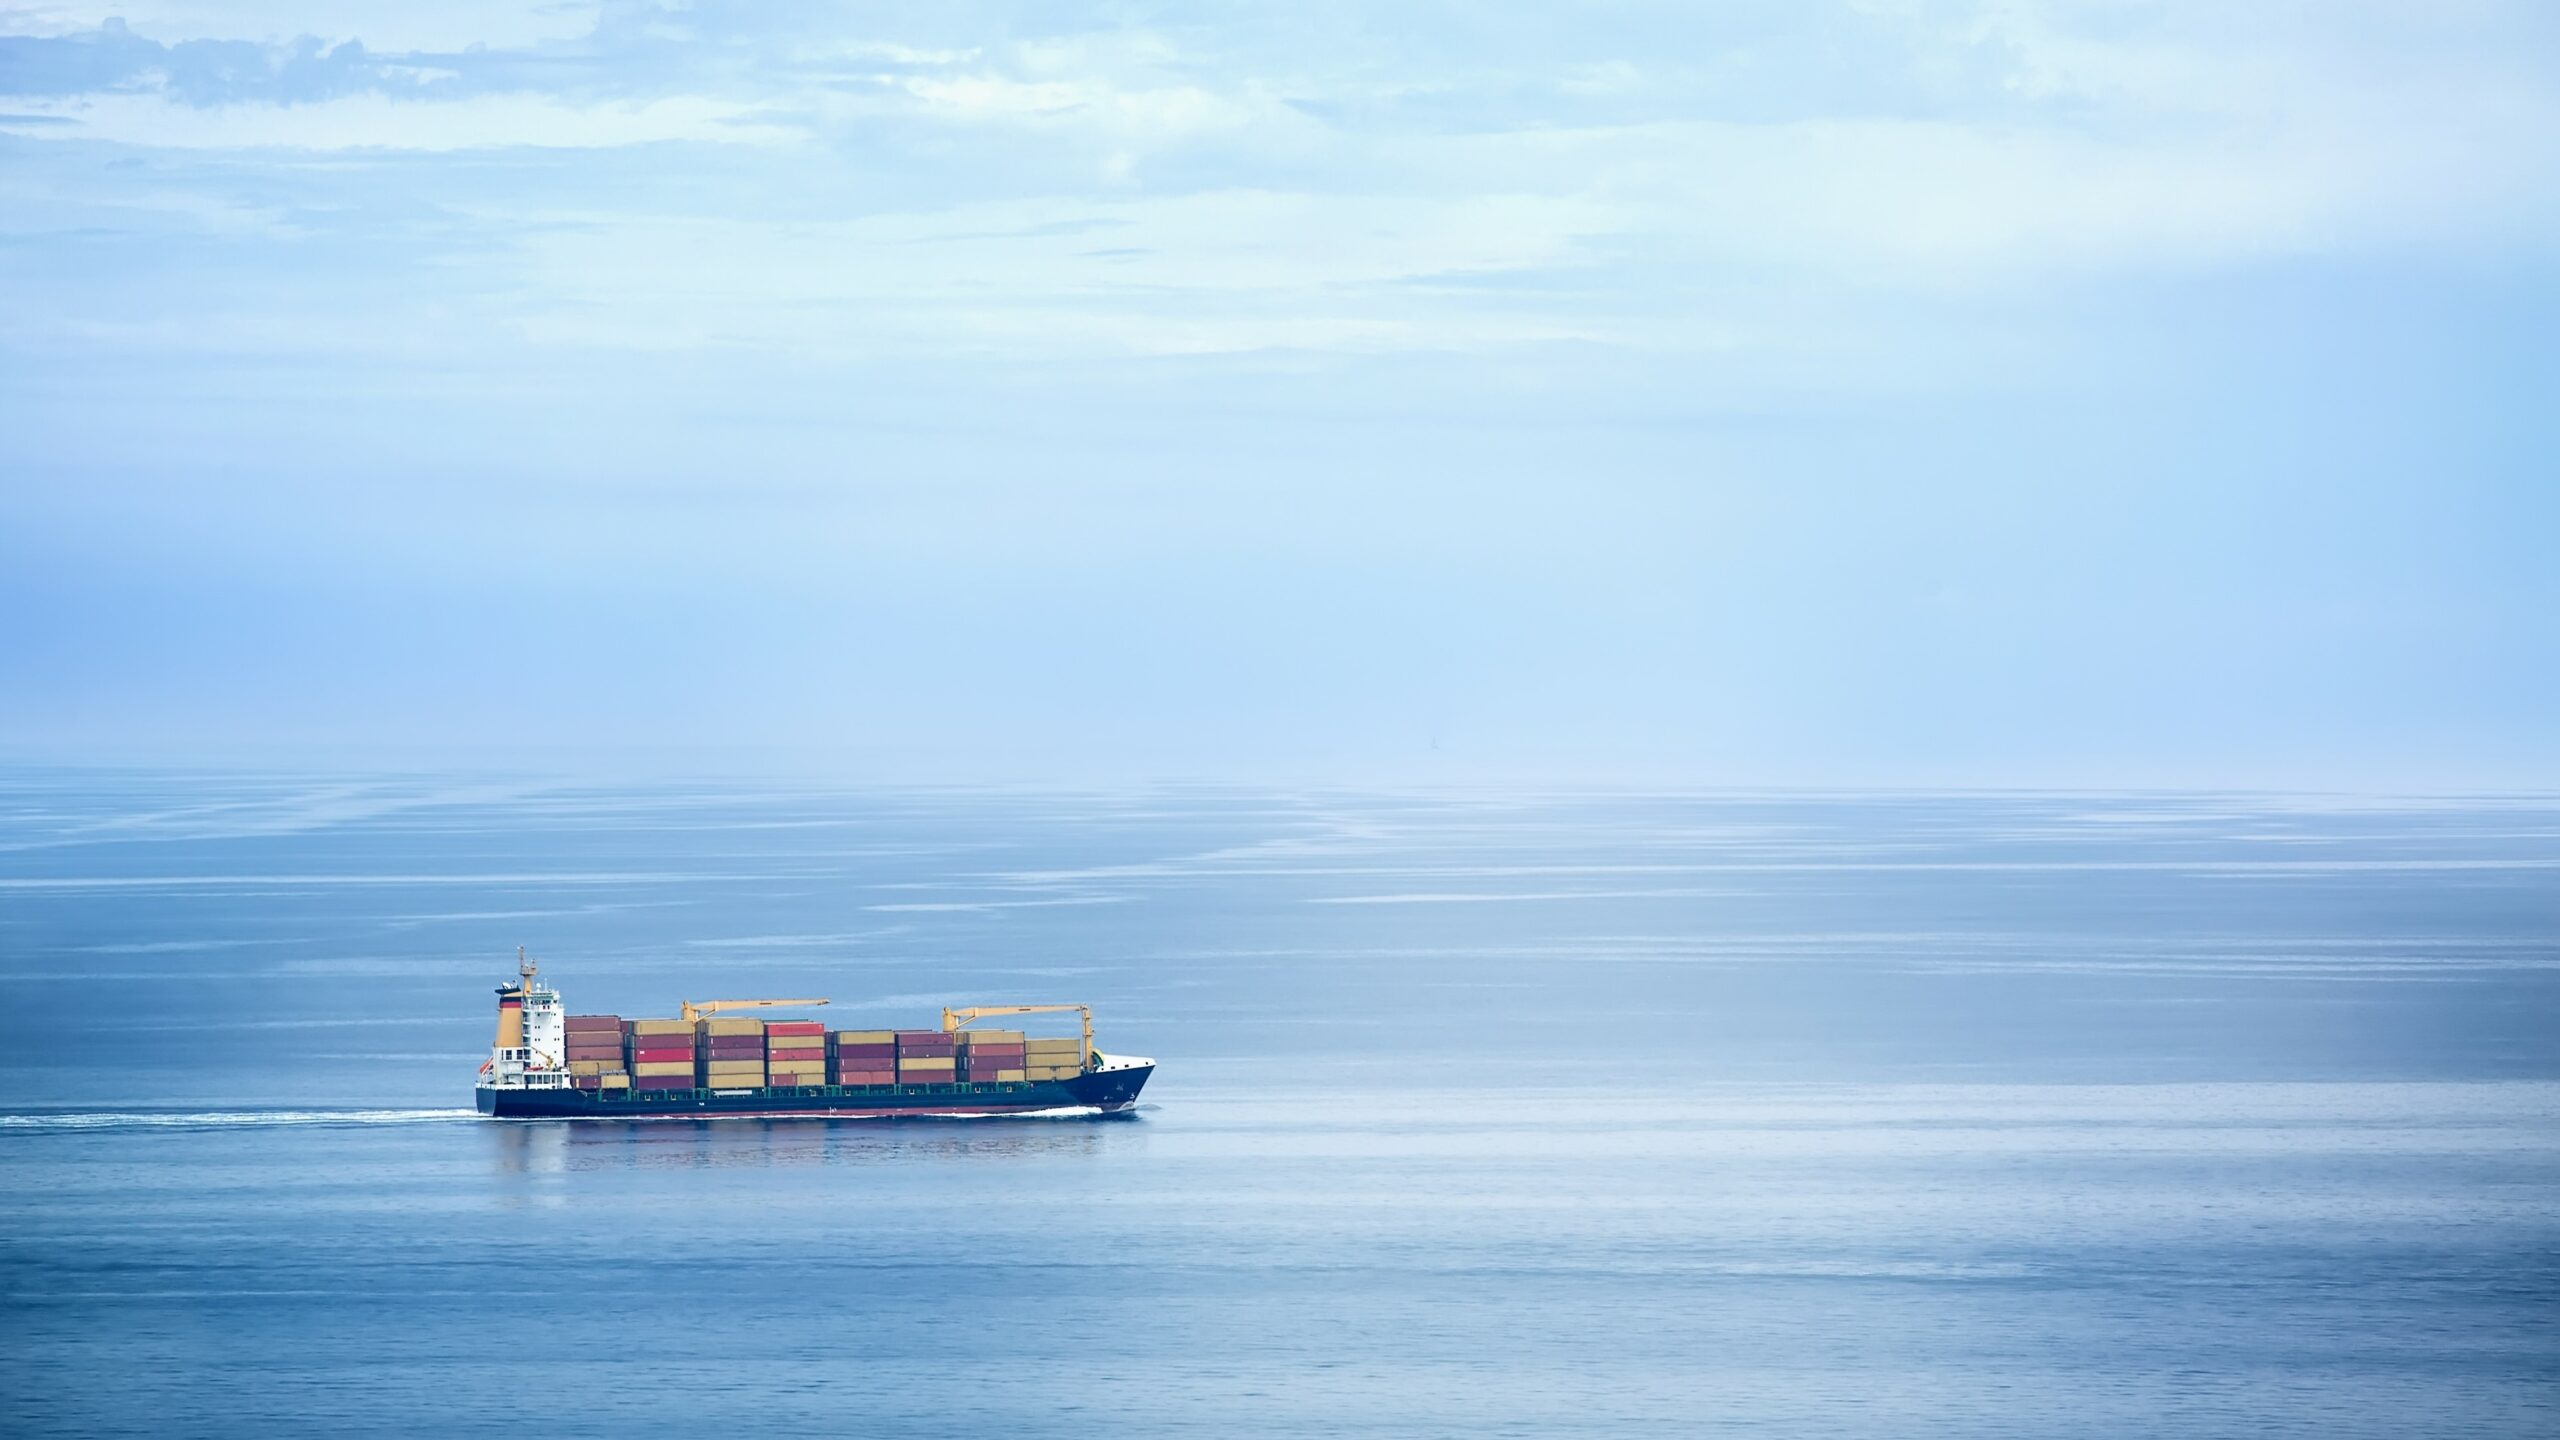 Container carriers indicate reducing rates on Asia-Europe trade 1